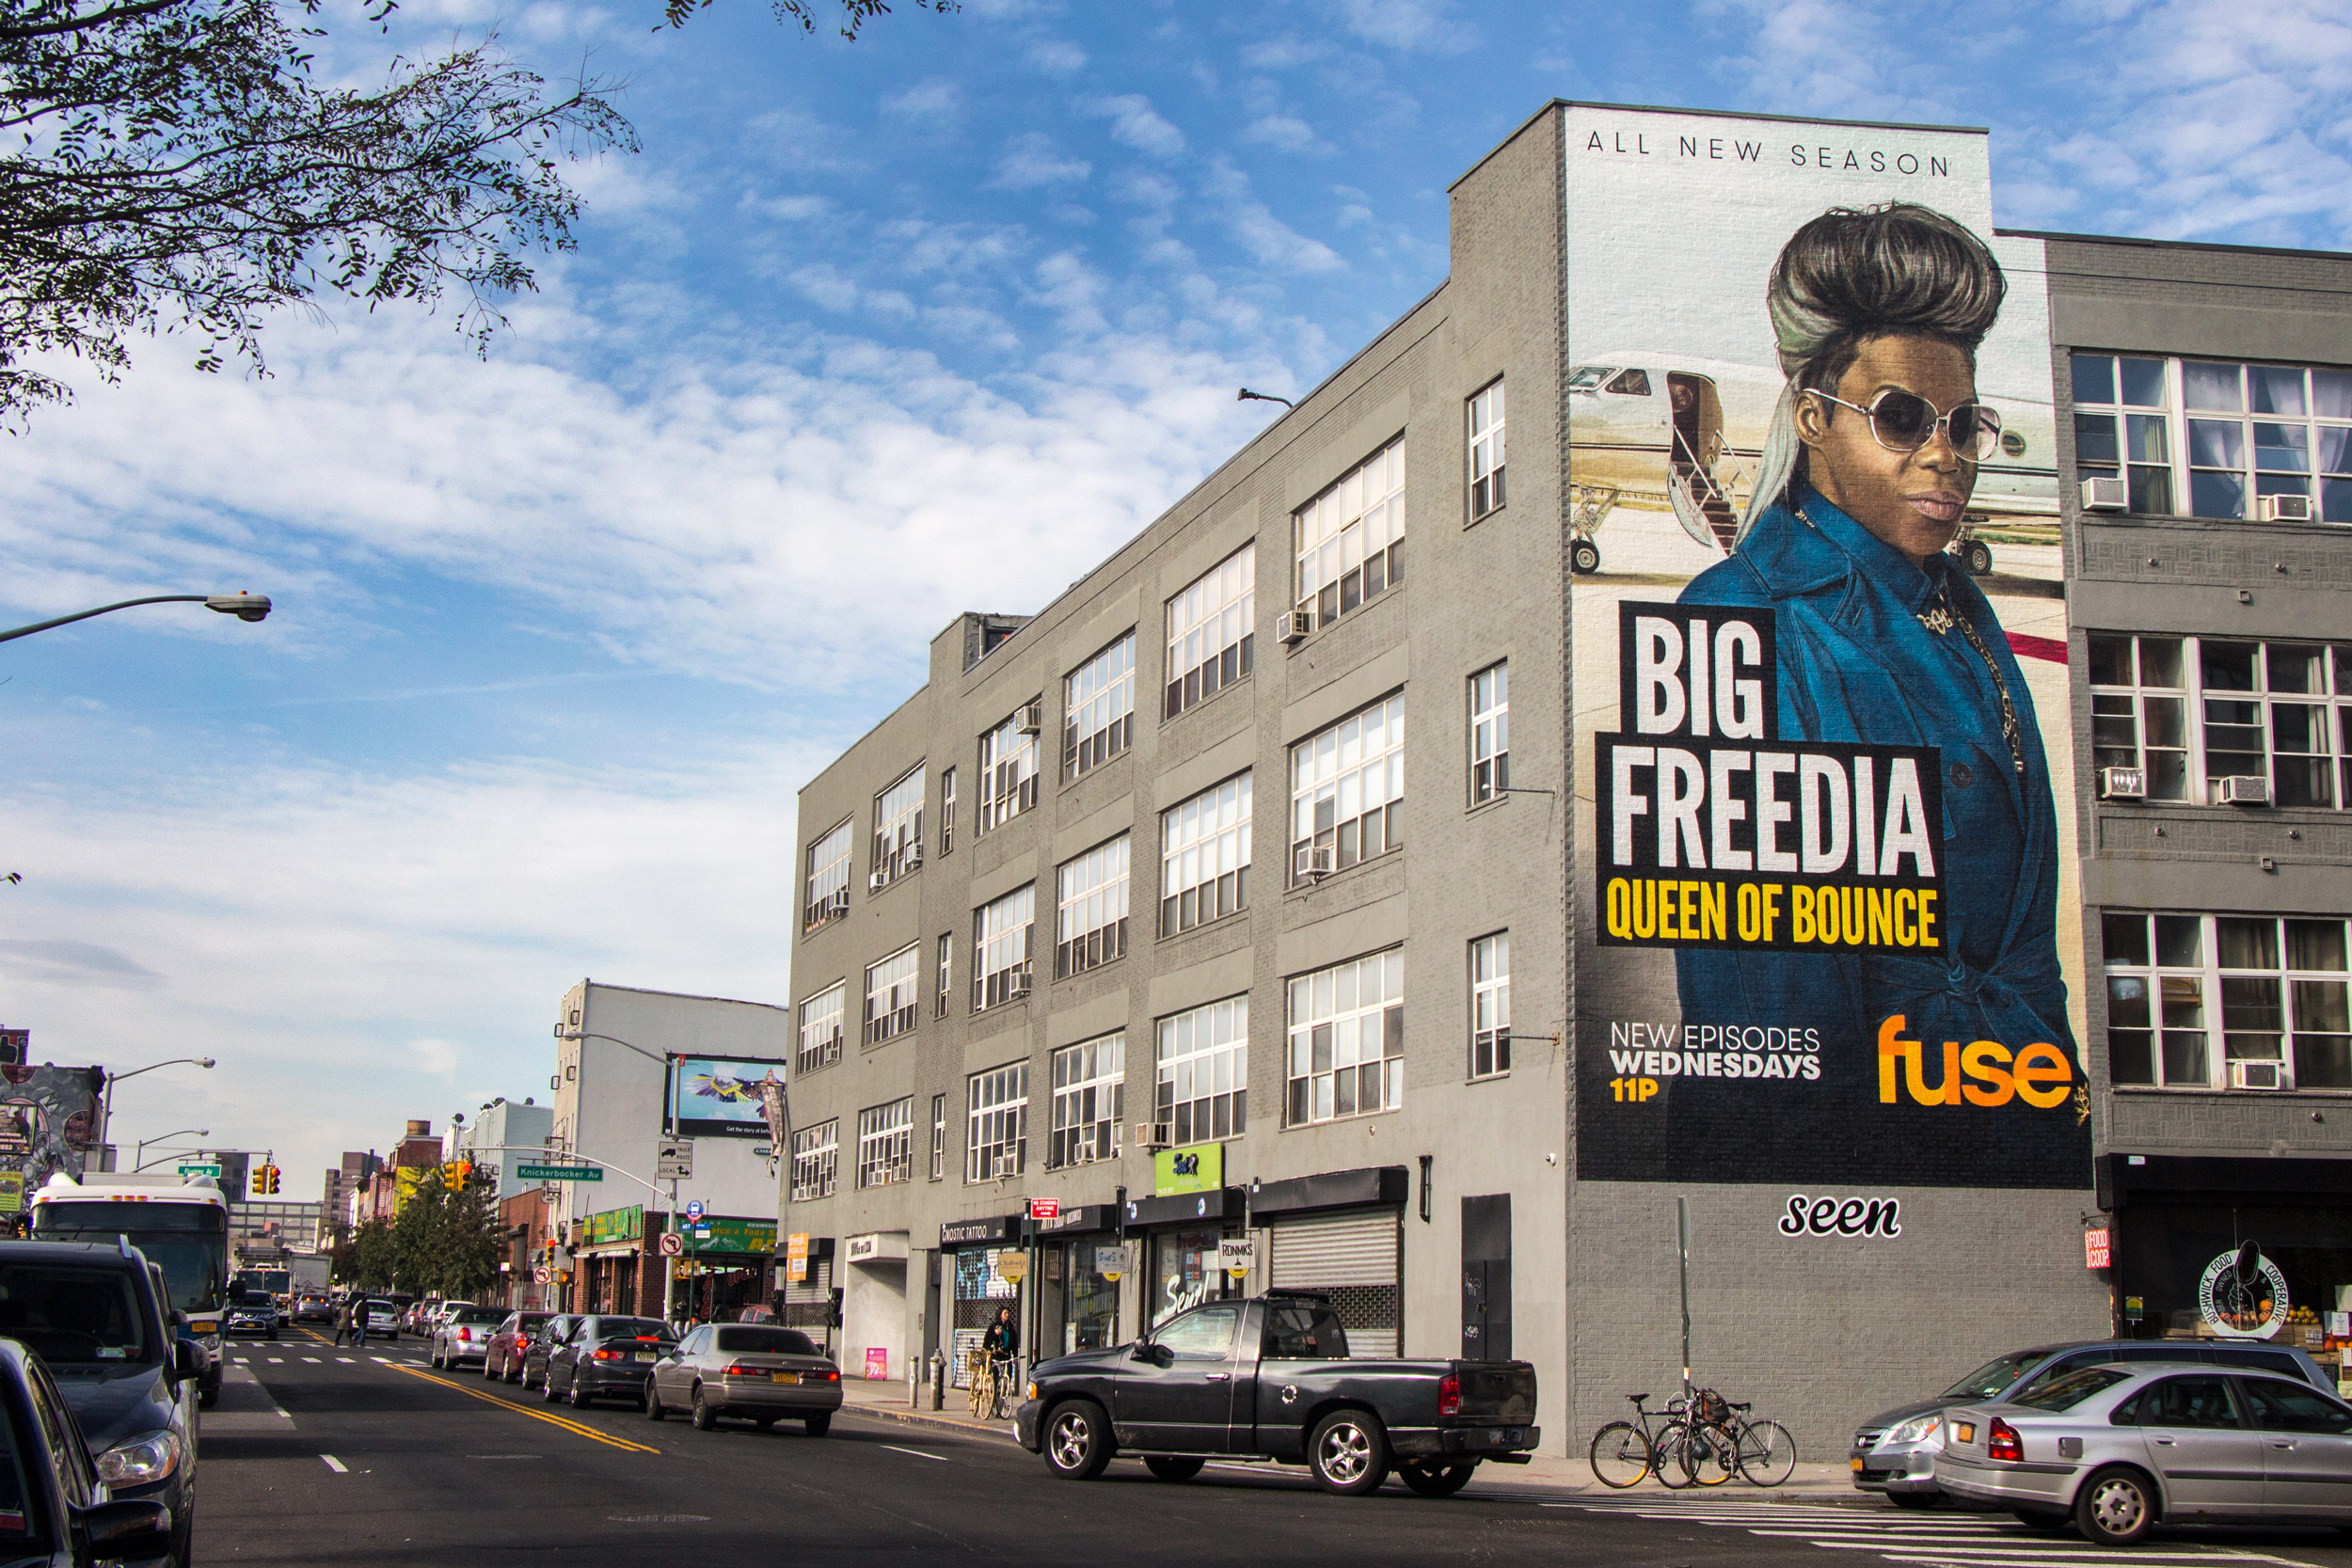 FUSE / BIG FREEDIA